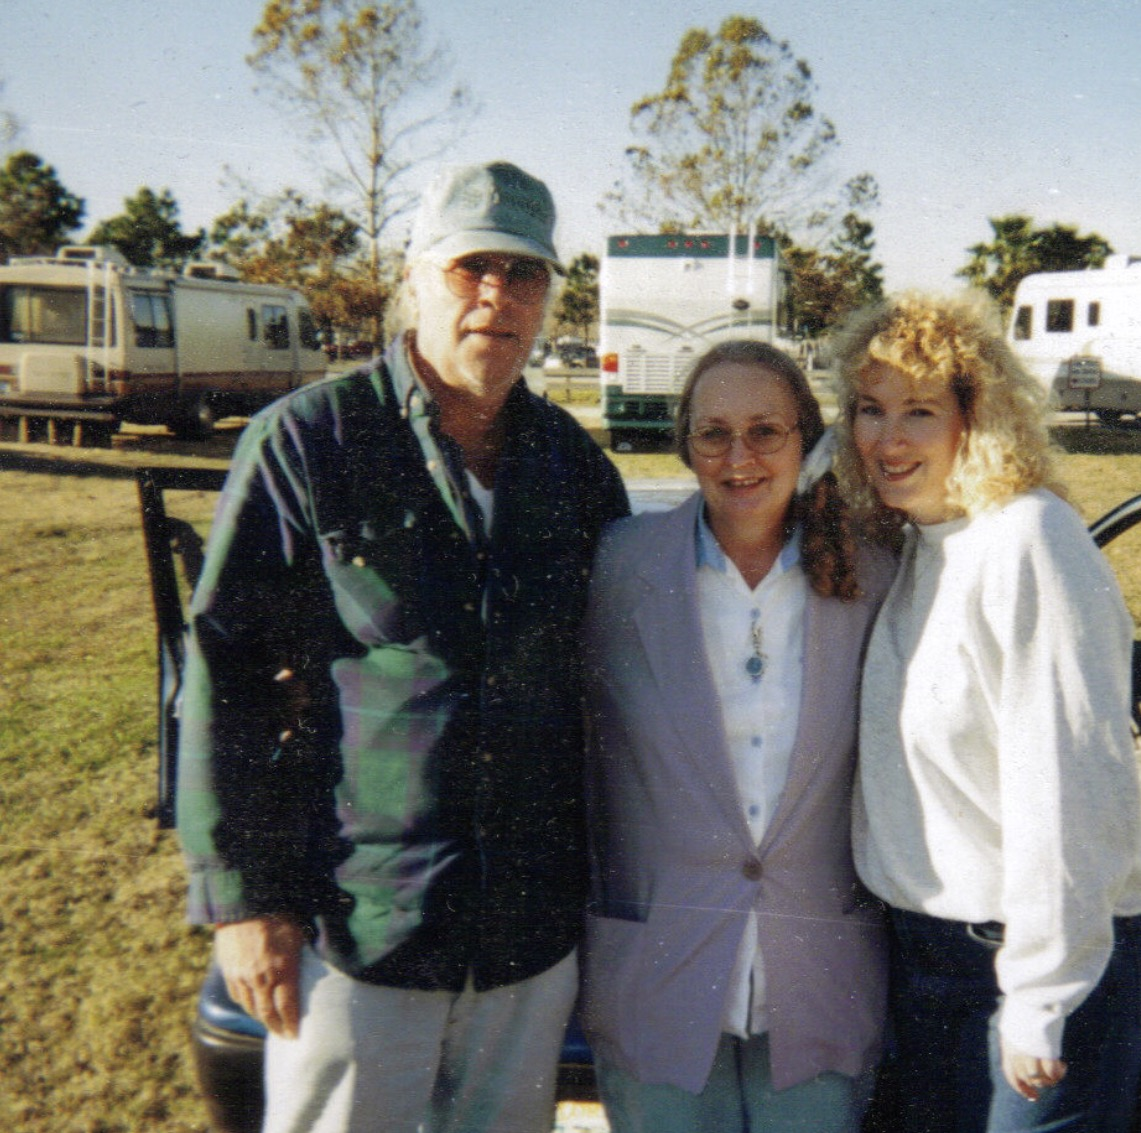 Dad mom and Sheila Daytona Beach flea market 2000